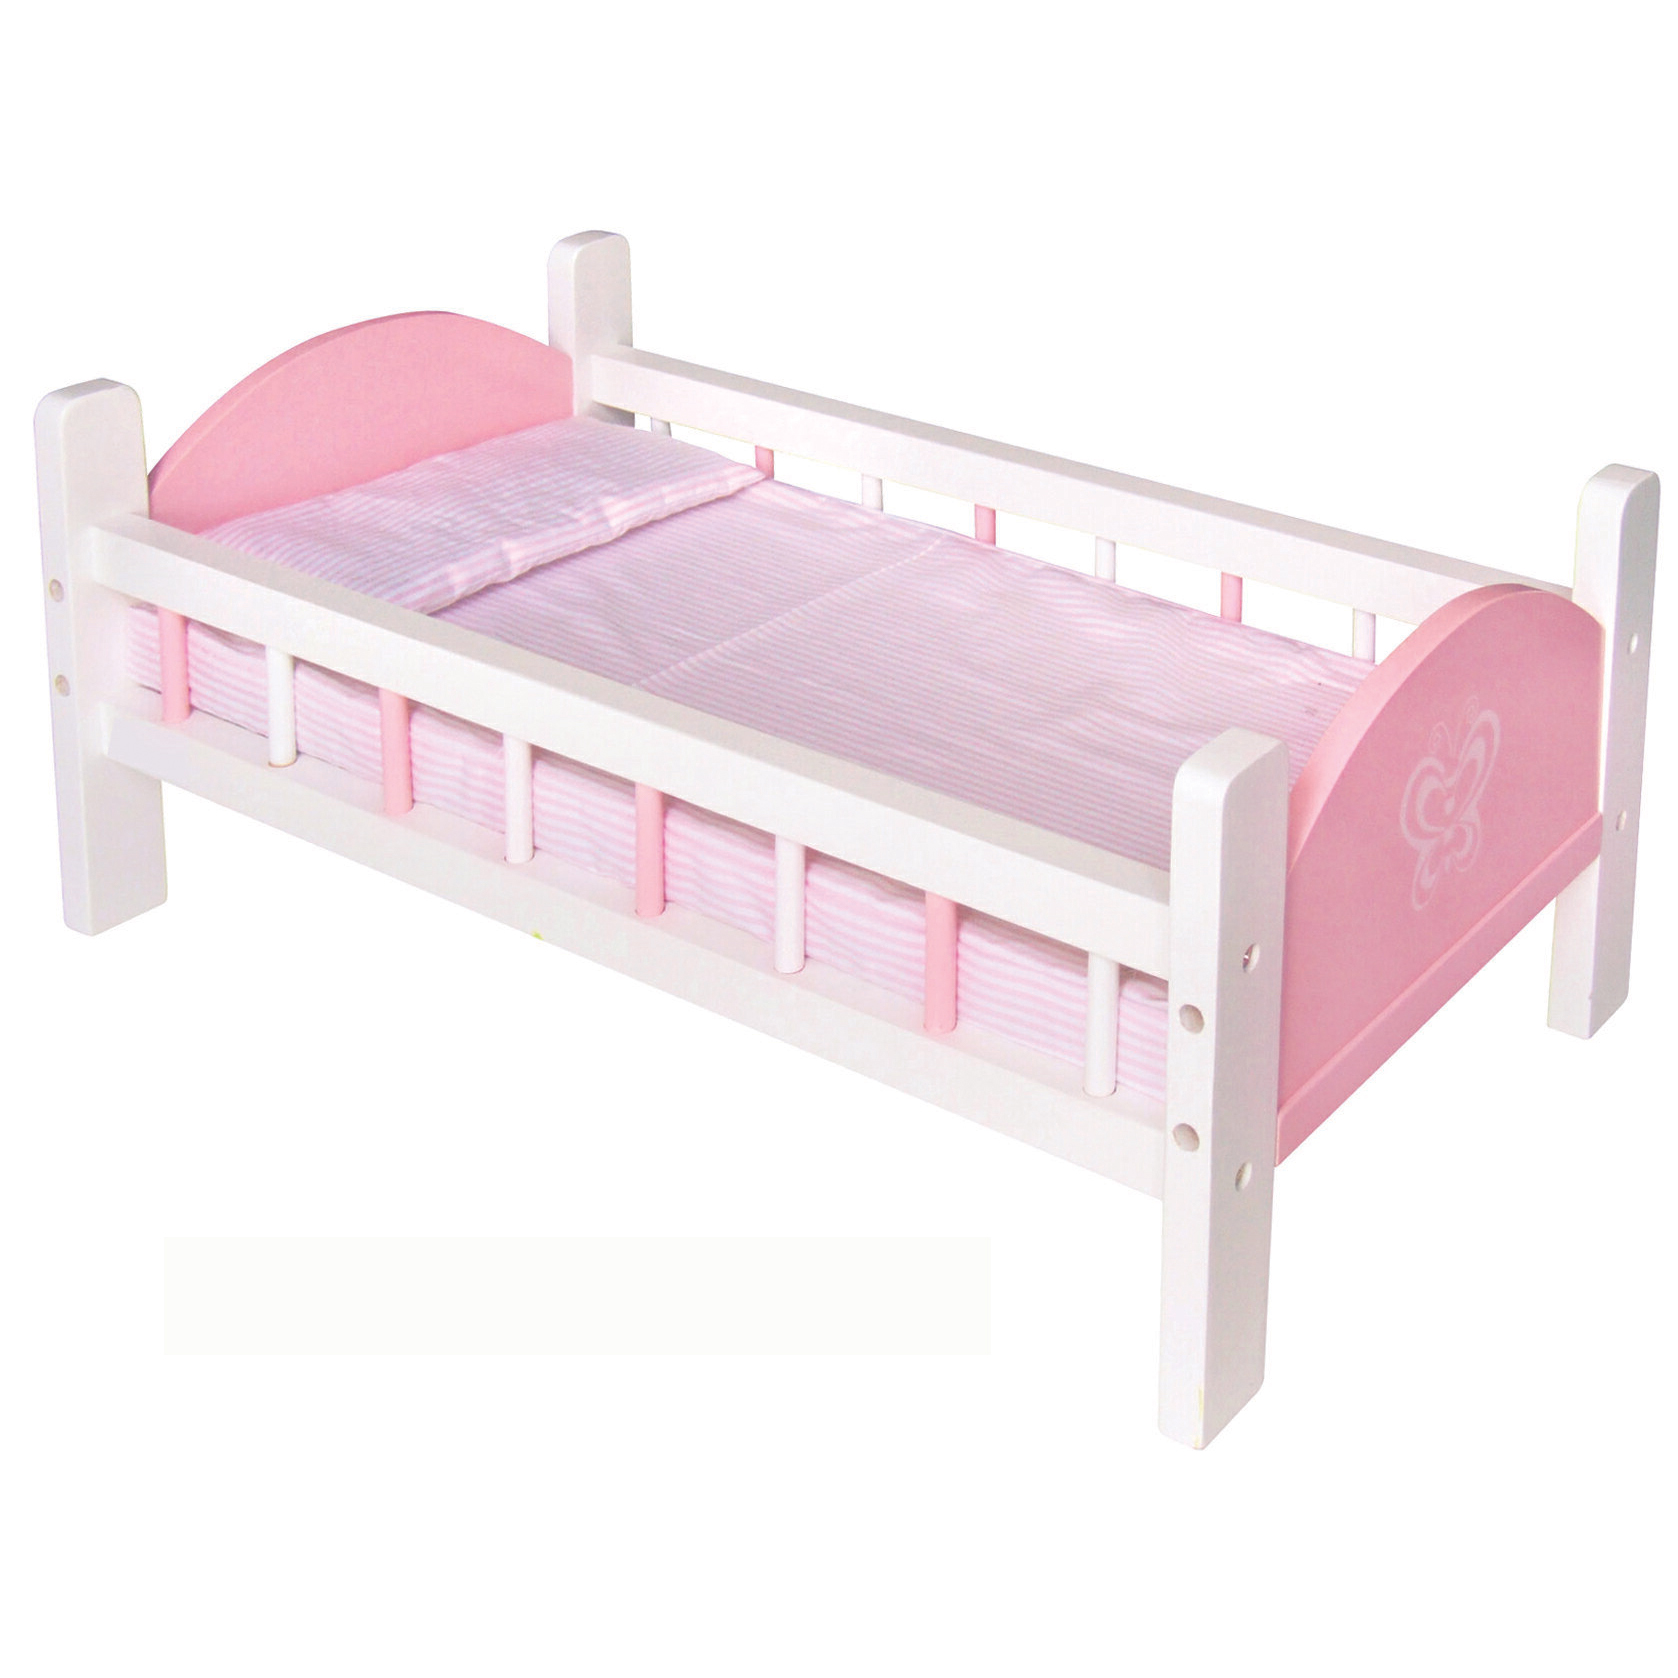 Wooden Doll Pink Bed By Viga Toys Romantic Flair Original